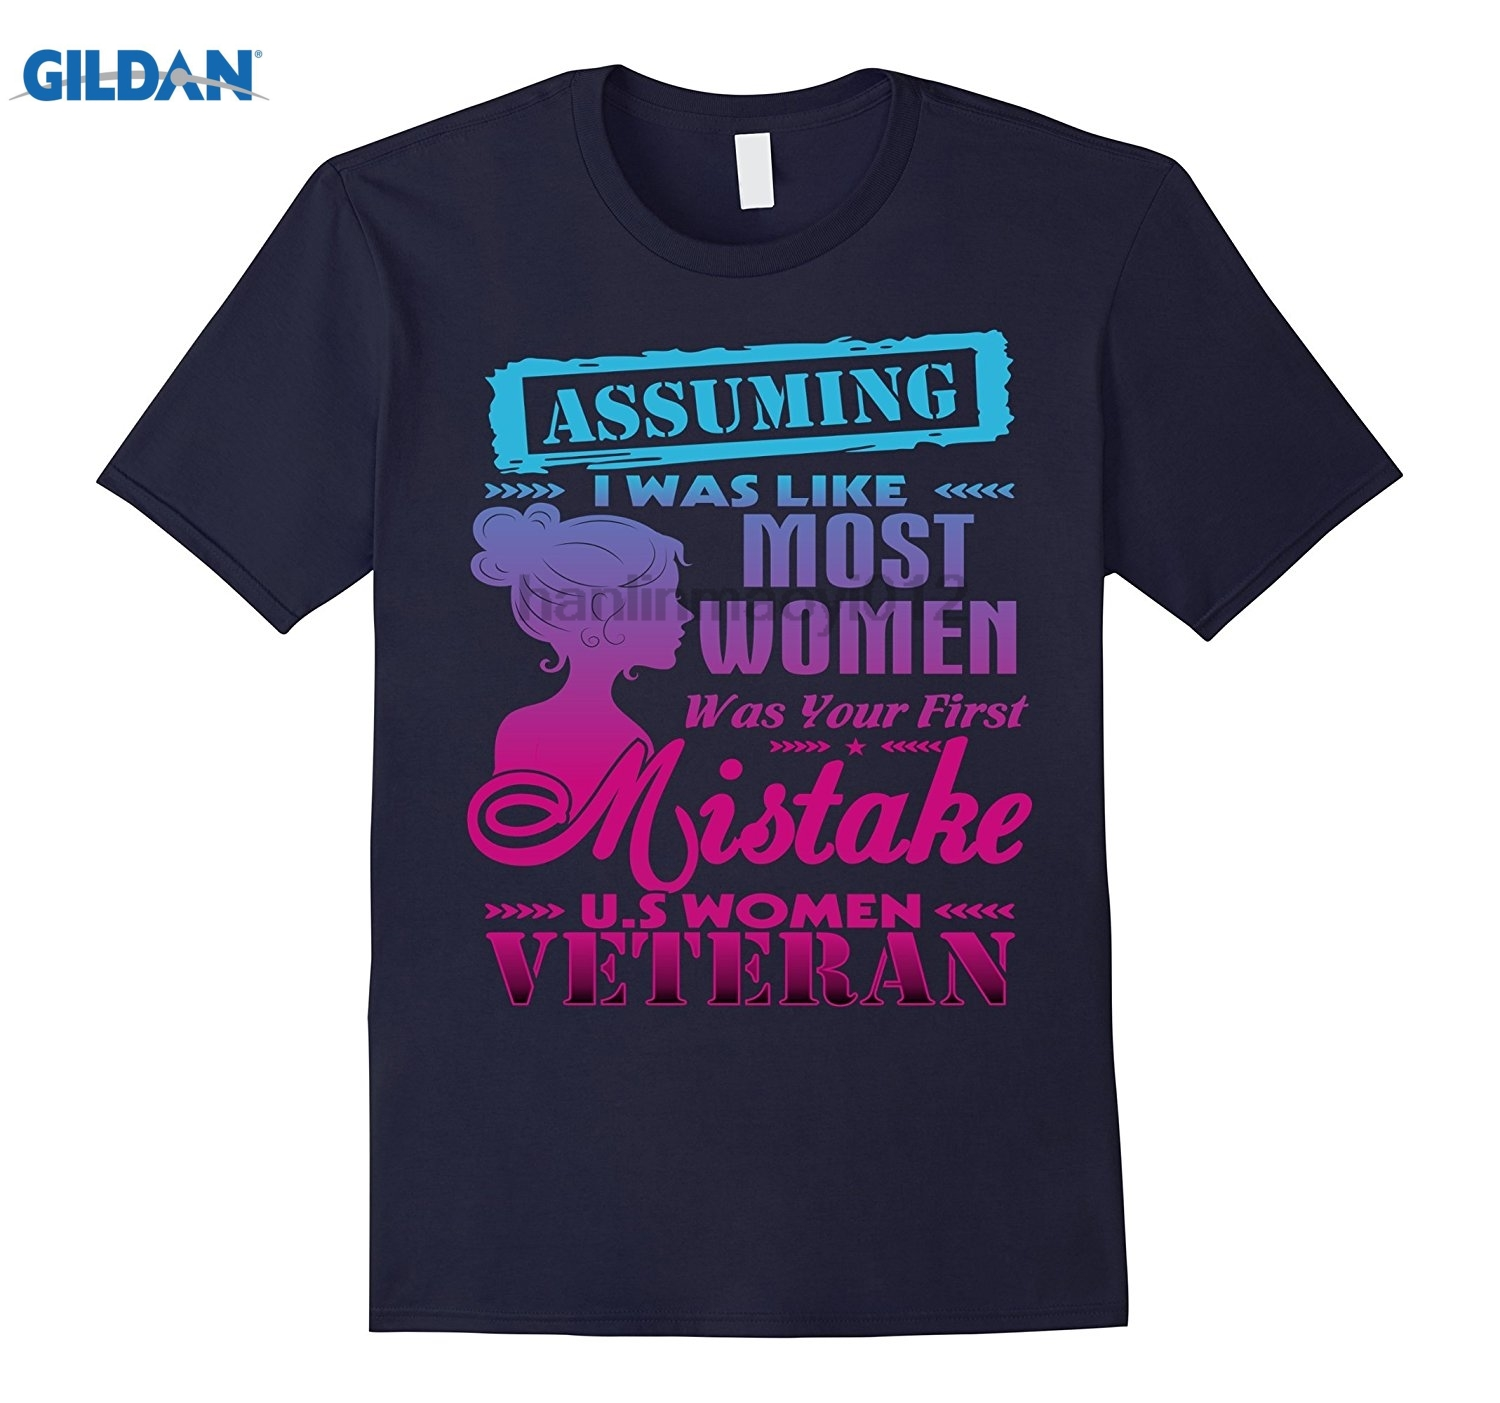 GILDAN U.S WOMEN VETERAN t shirts Mothers Day Ms. T-shirt